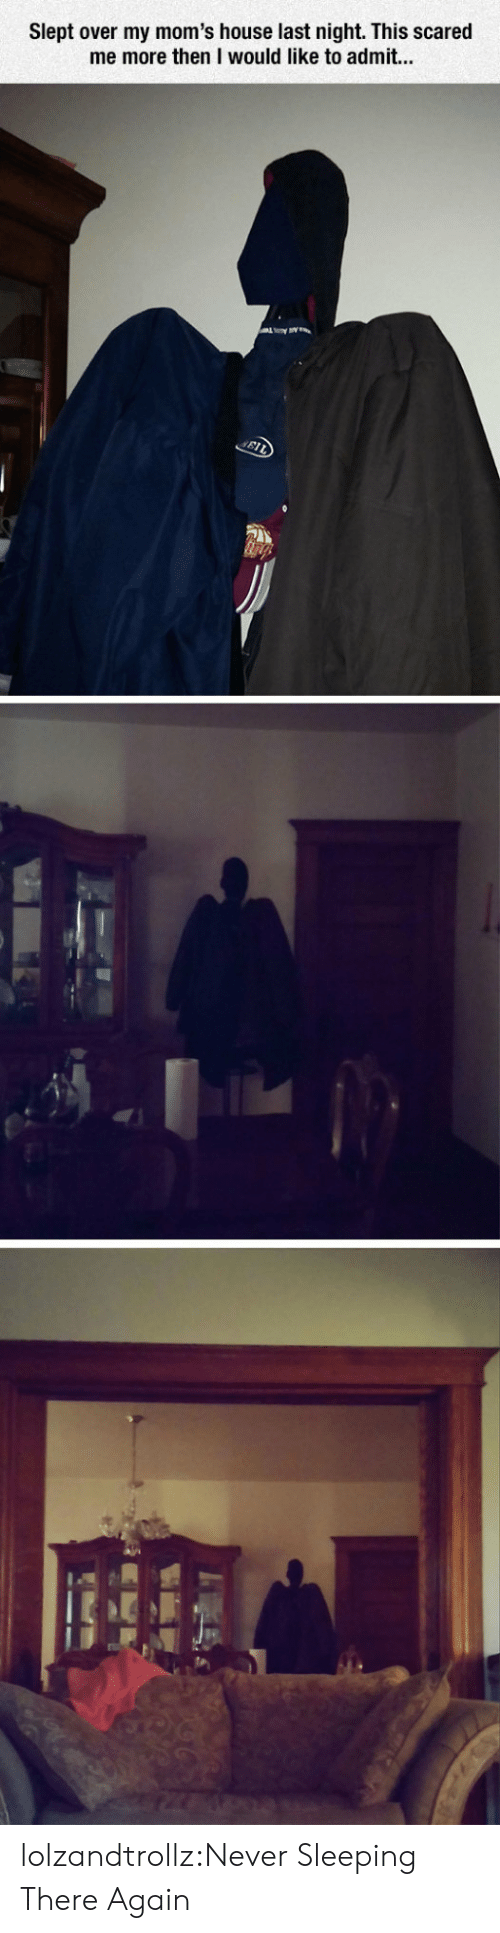 Moms, Tumblr, and Blog: Slept over my mom's house last night. This scared  me more then I would like to admit... lolzandtrollz:Never Sleeping There Again